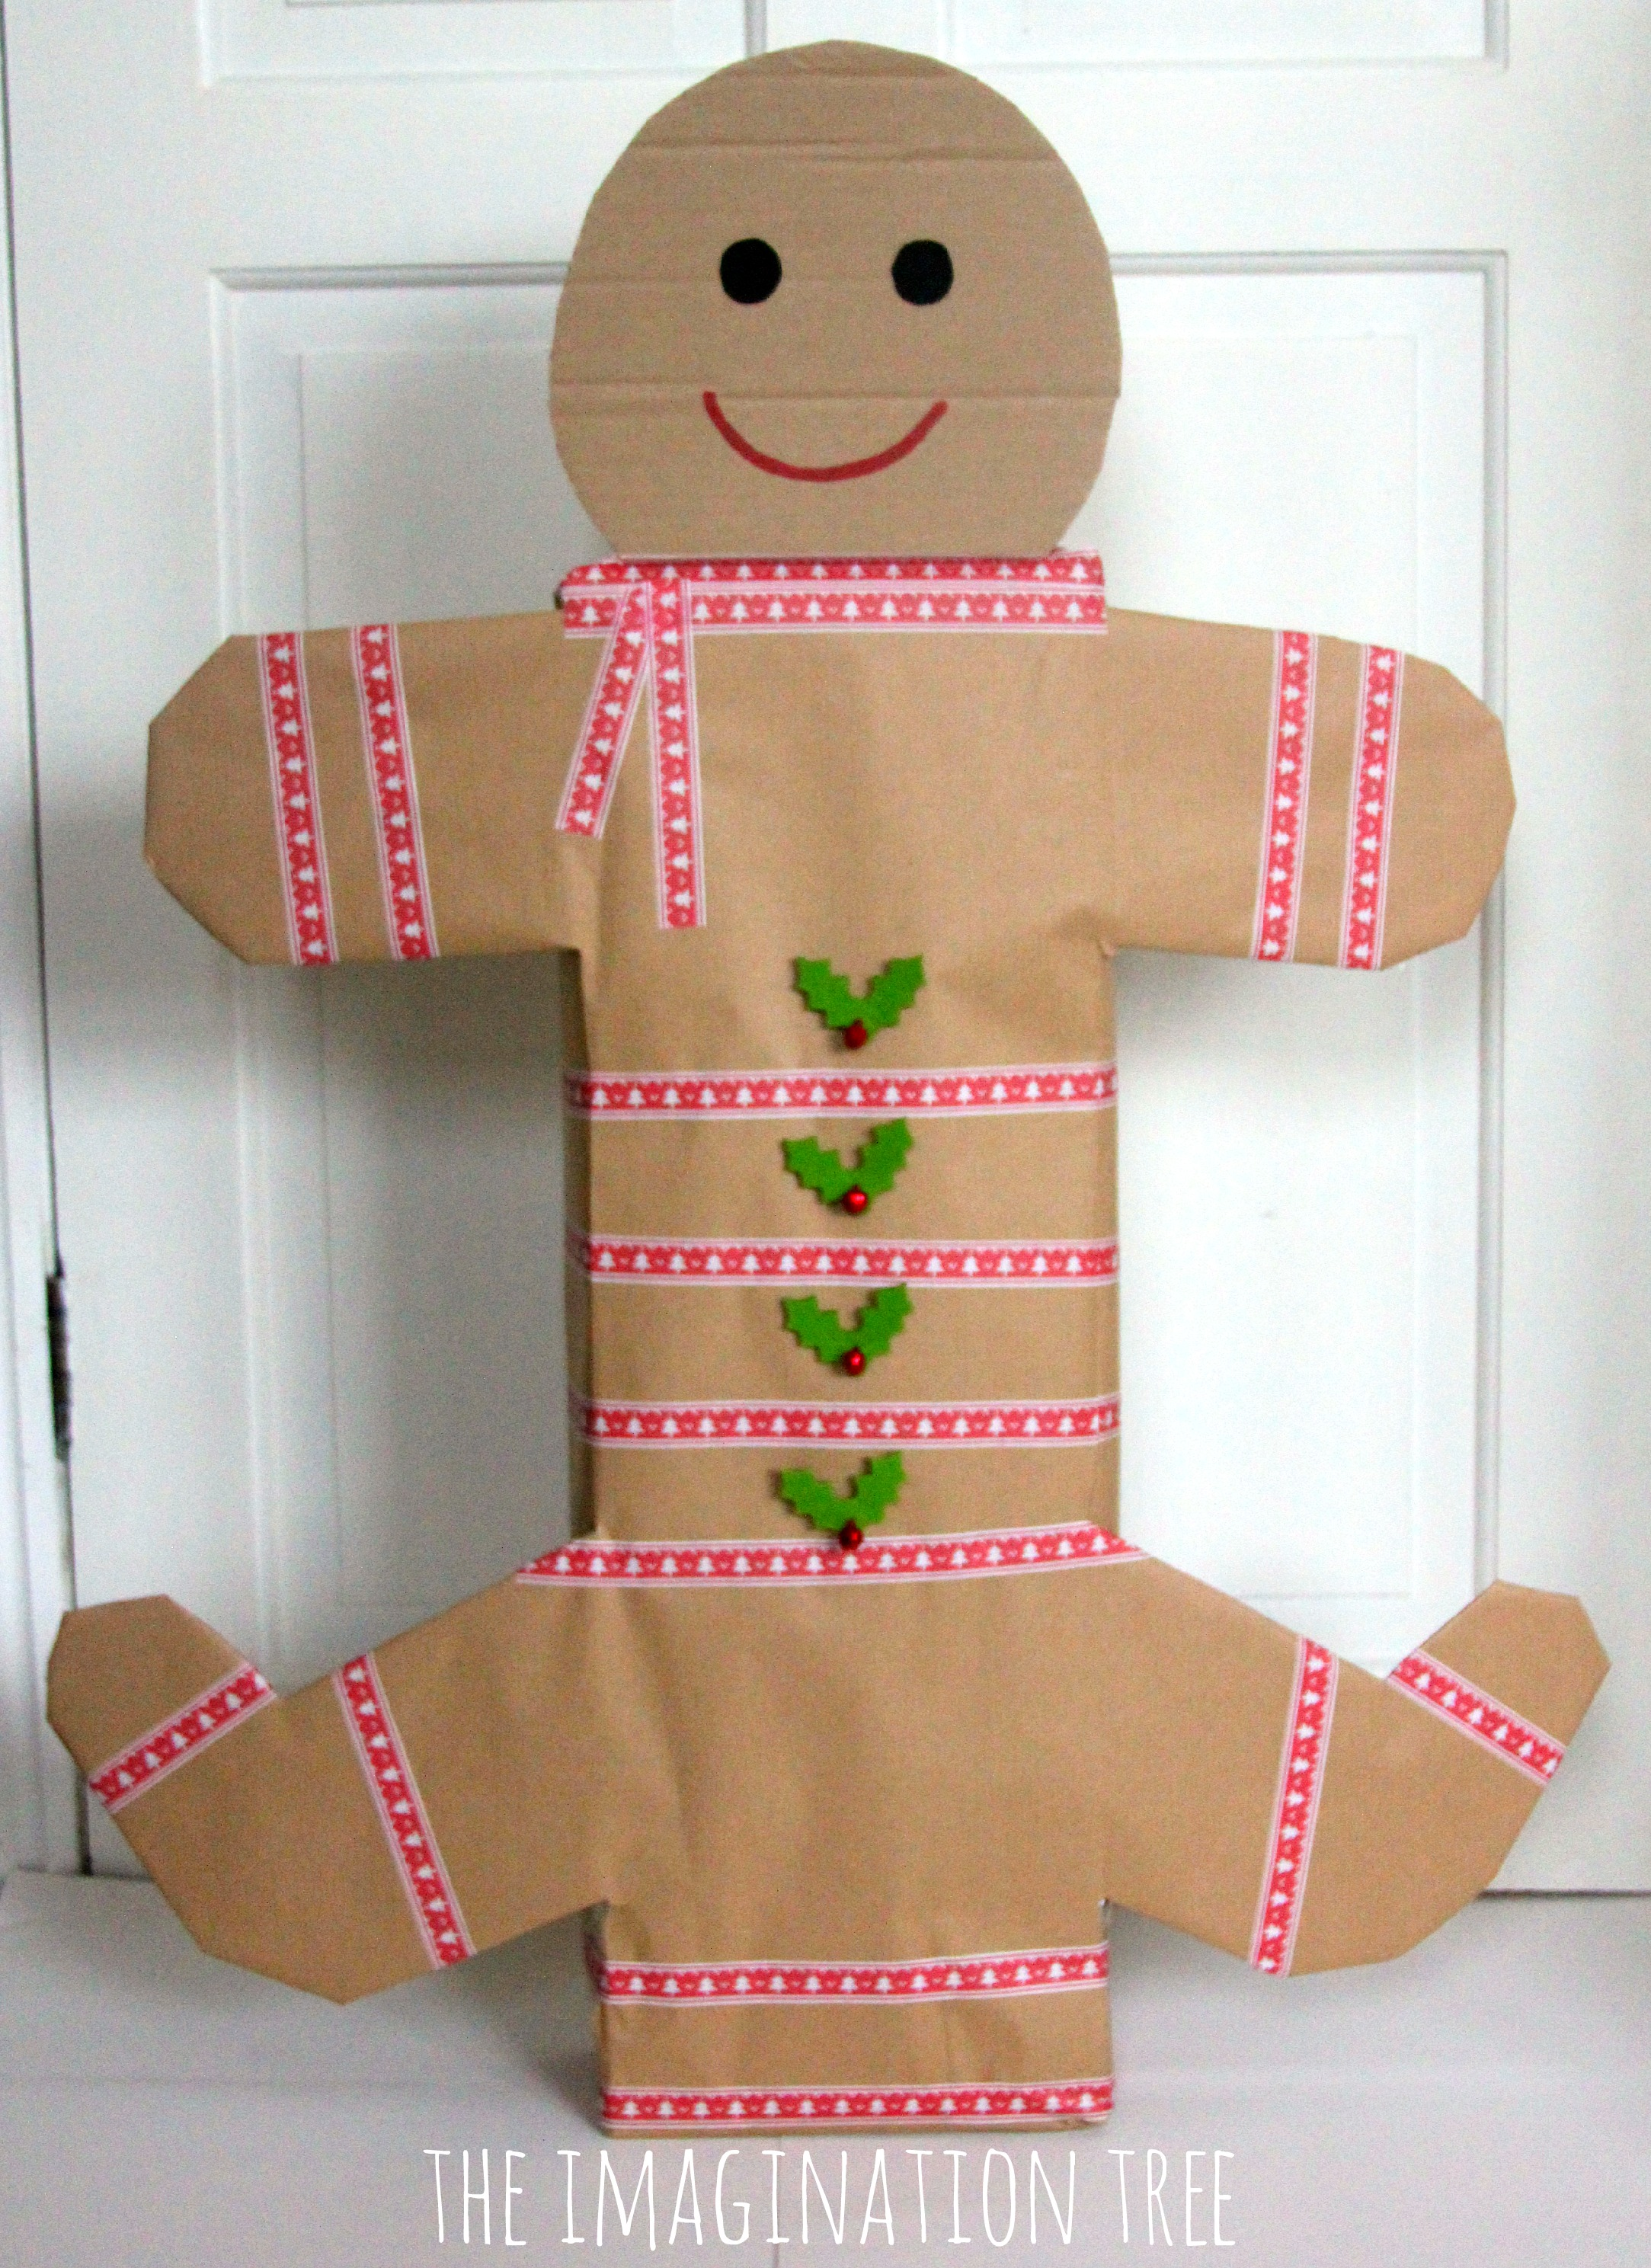 creative gift wrapping ideas turn a box shape into a gingerbread man